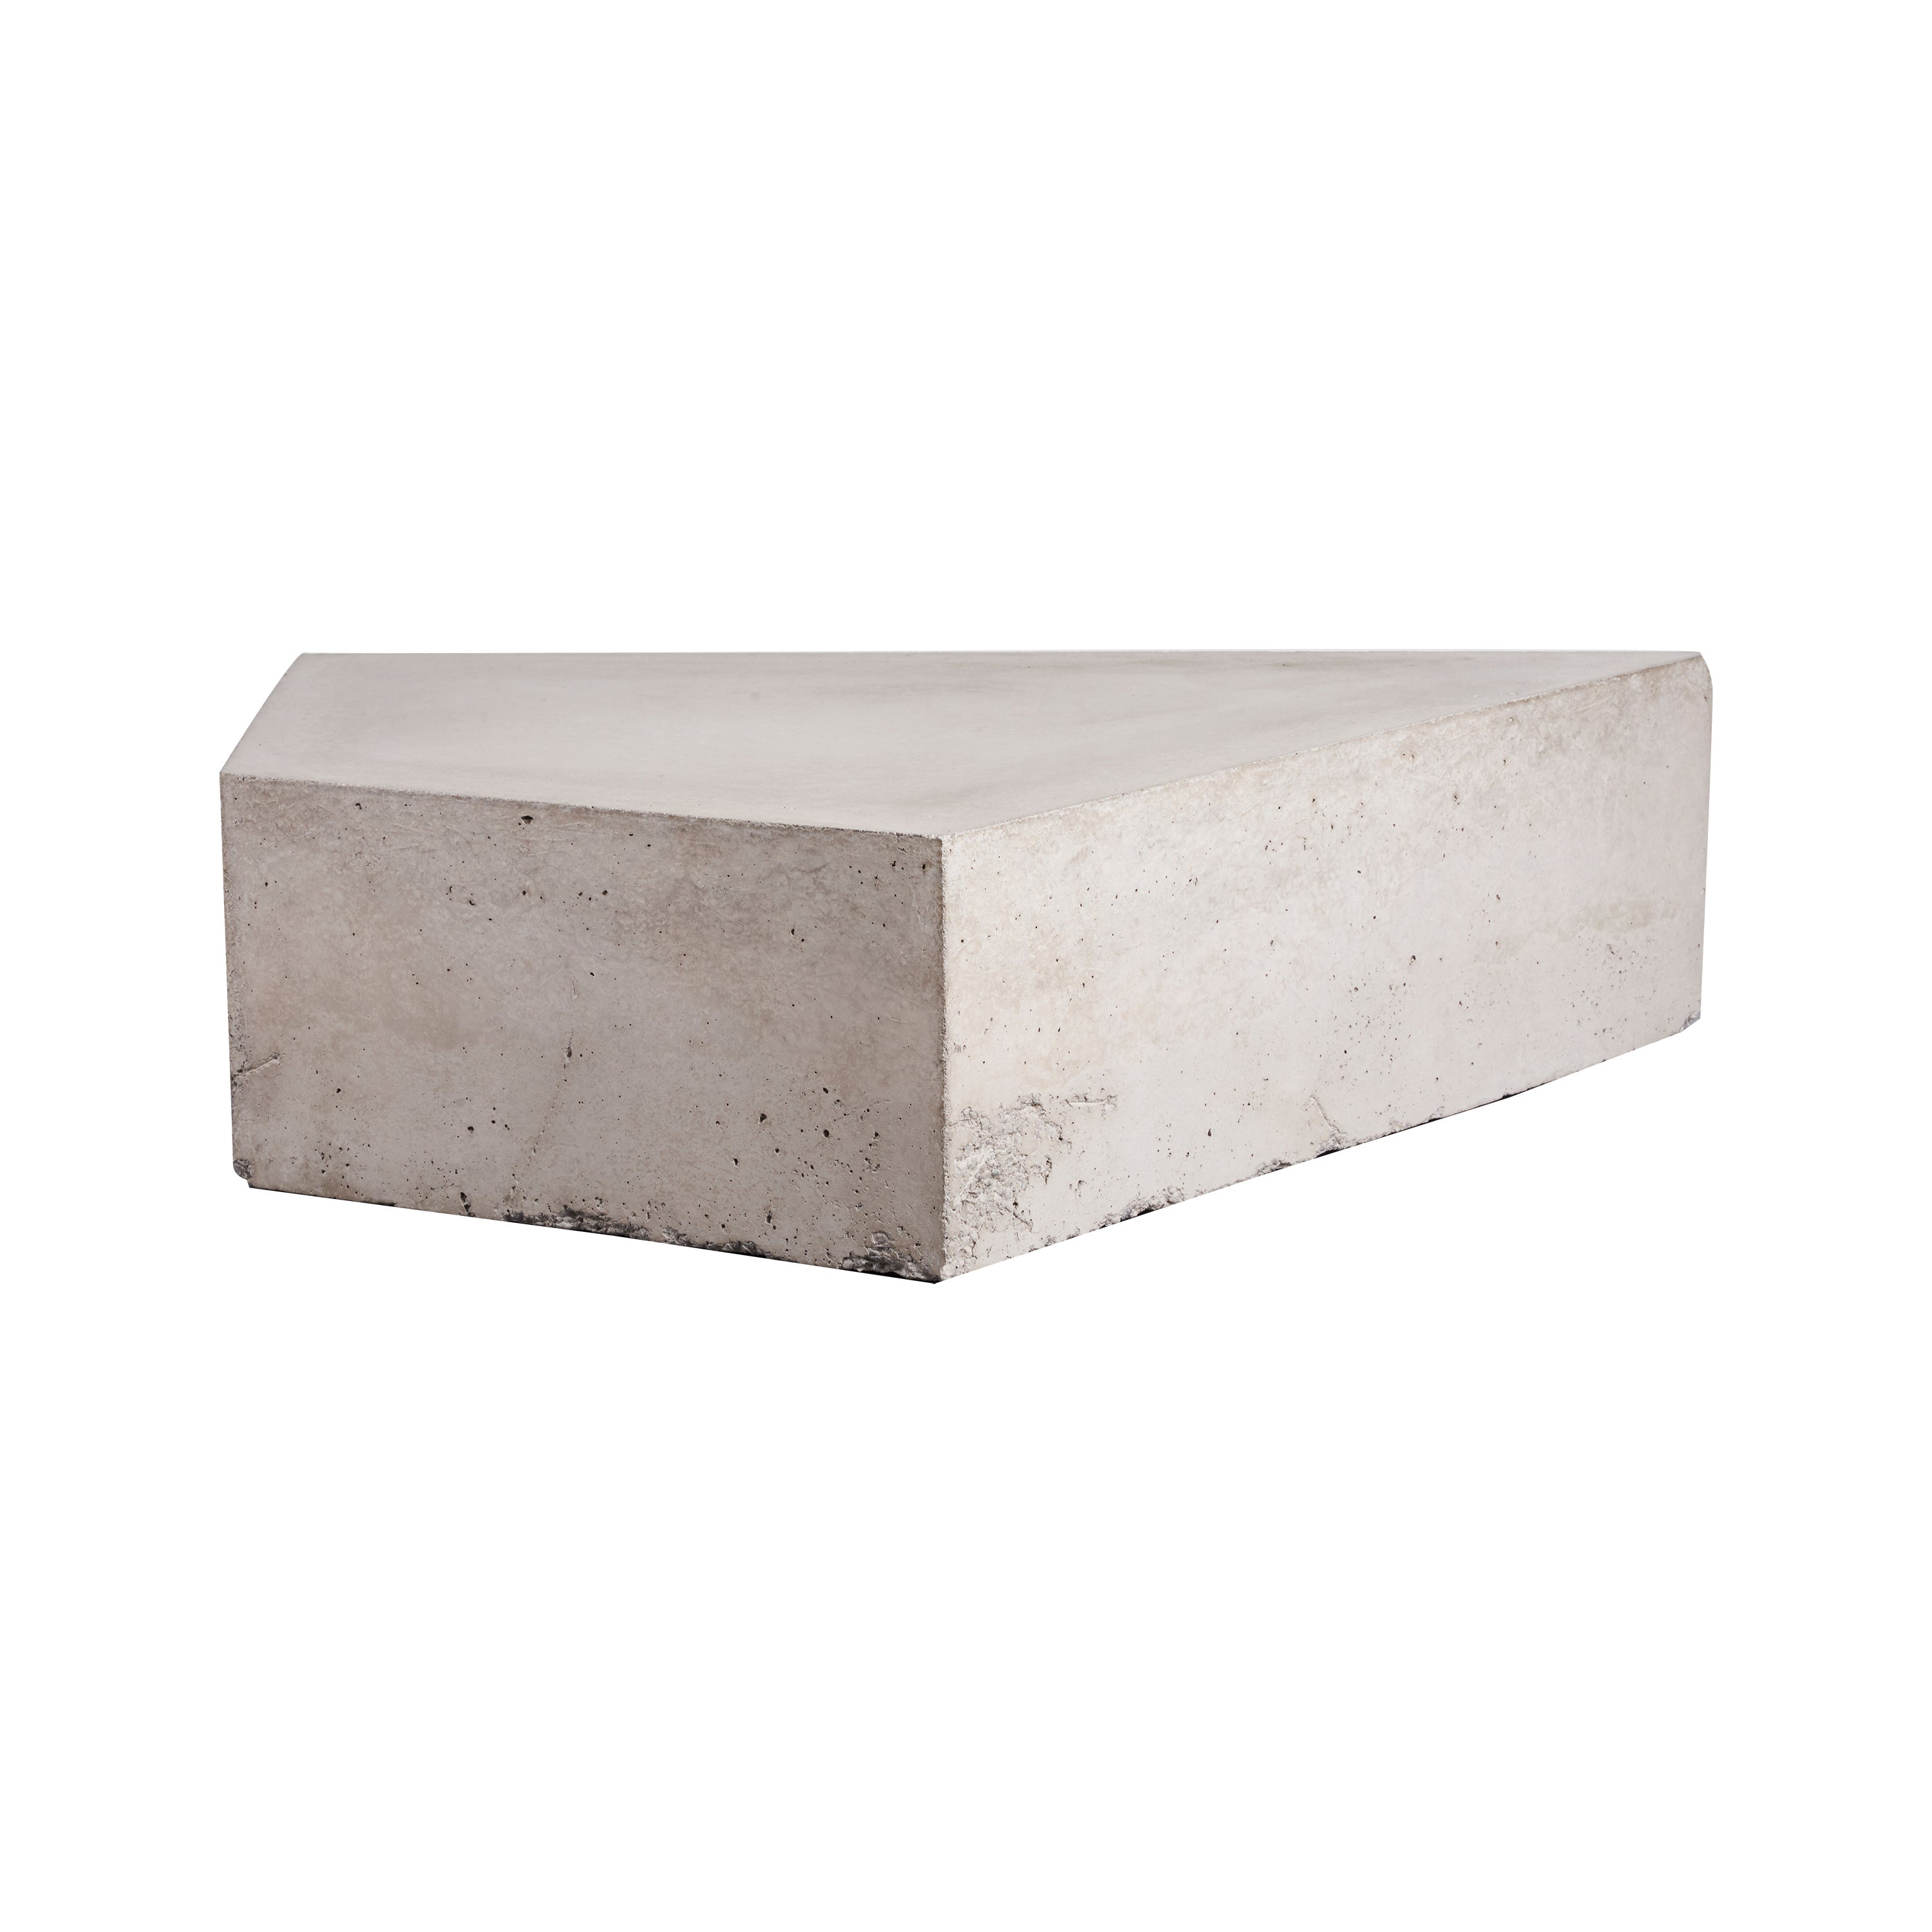 'Goldstein' Reinforced Concrete Table, One of a Kind Artwork by Littlewhitehead